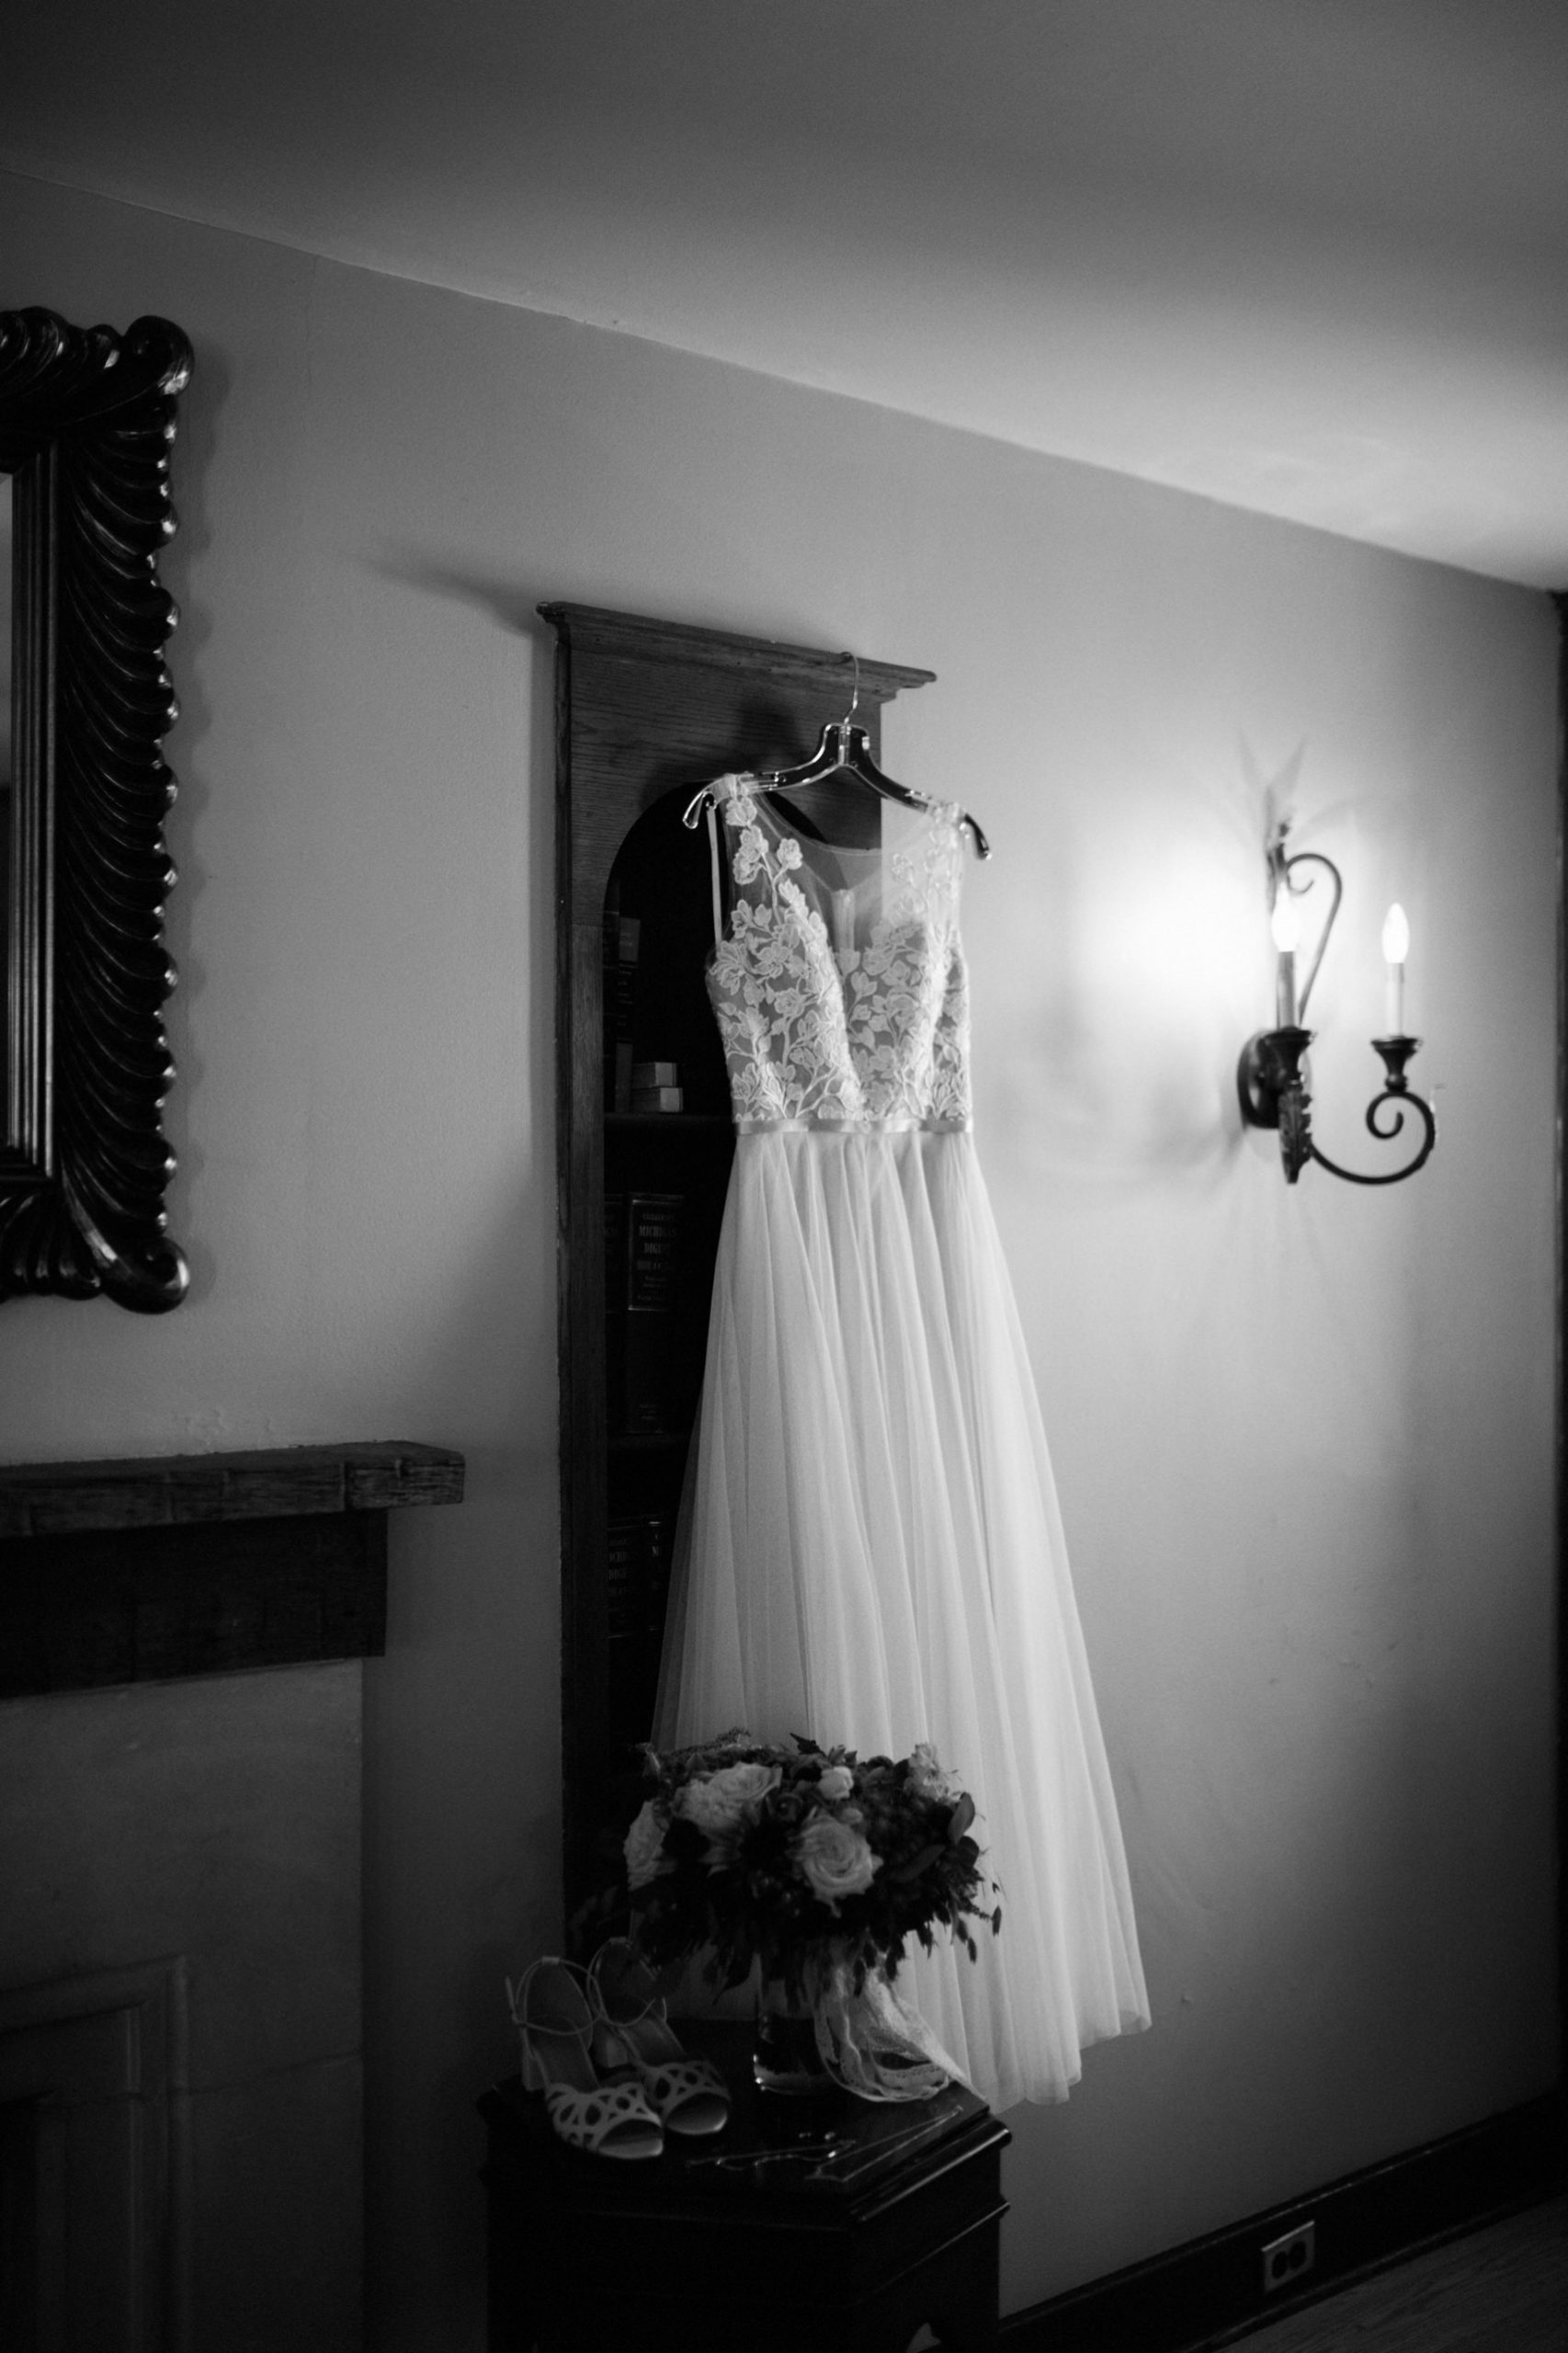 Black and white photo of a wedding dress hanging